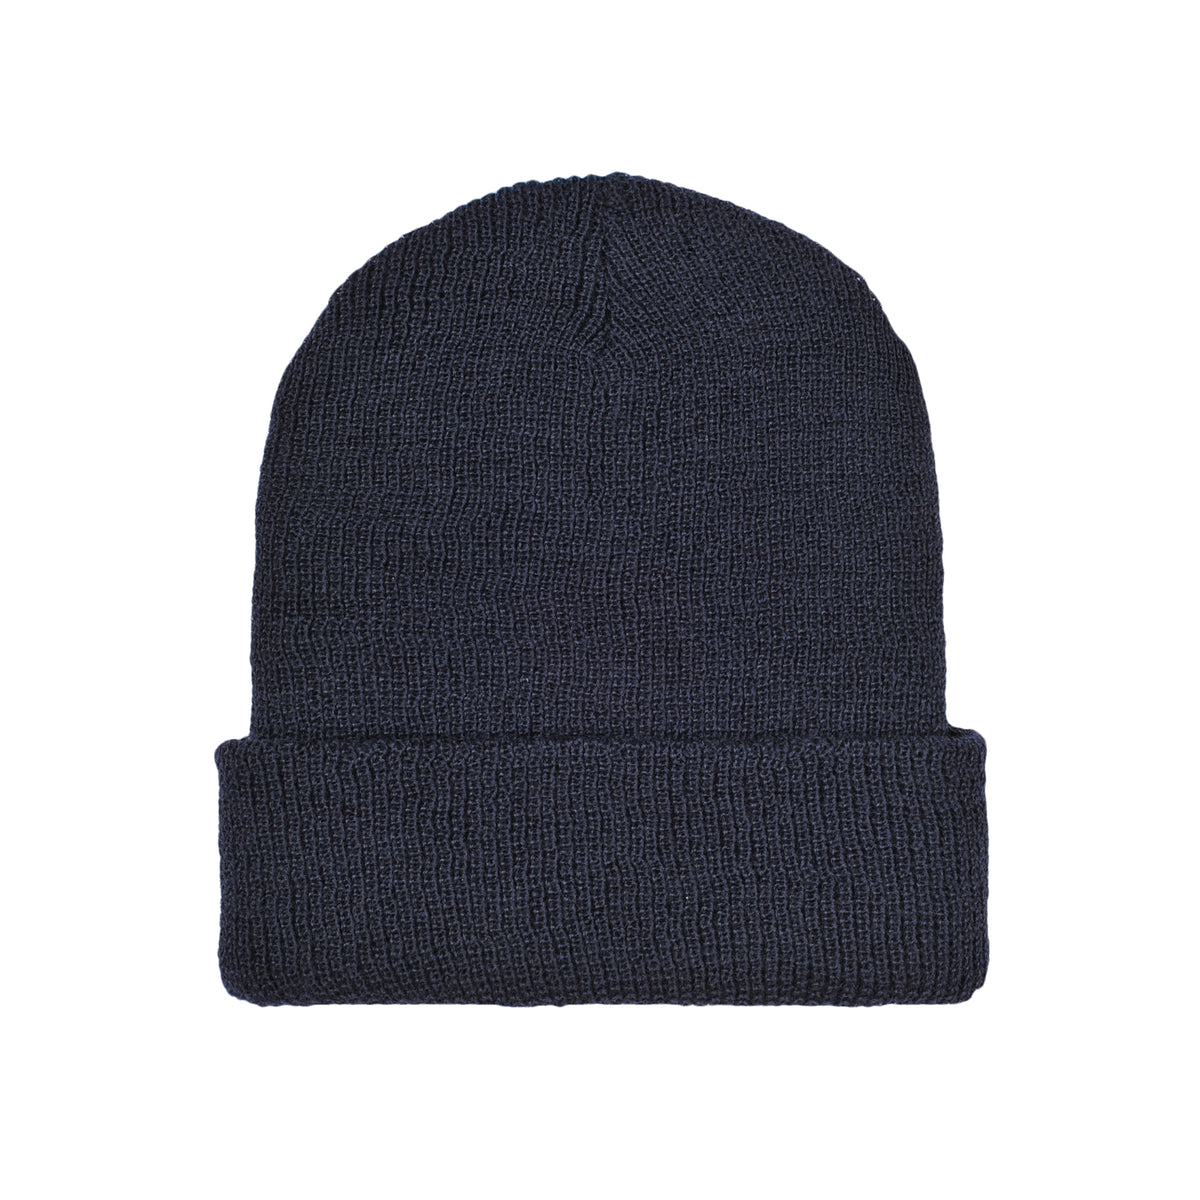 CLASSIC LOGO wool beanie navy - RAVE skateboards